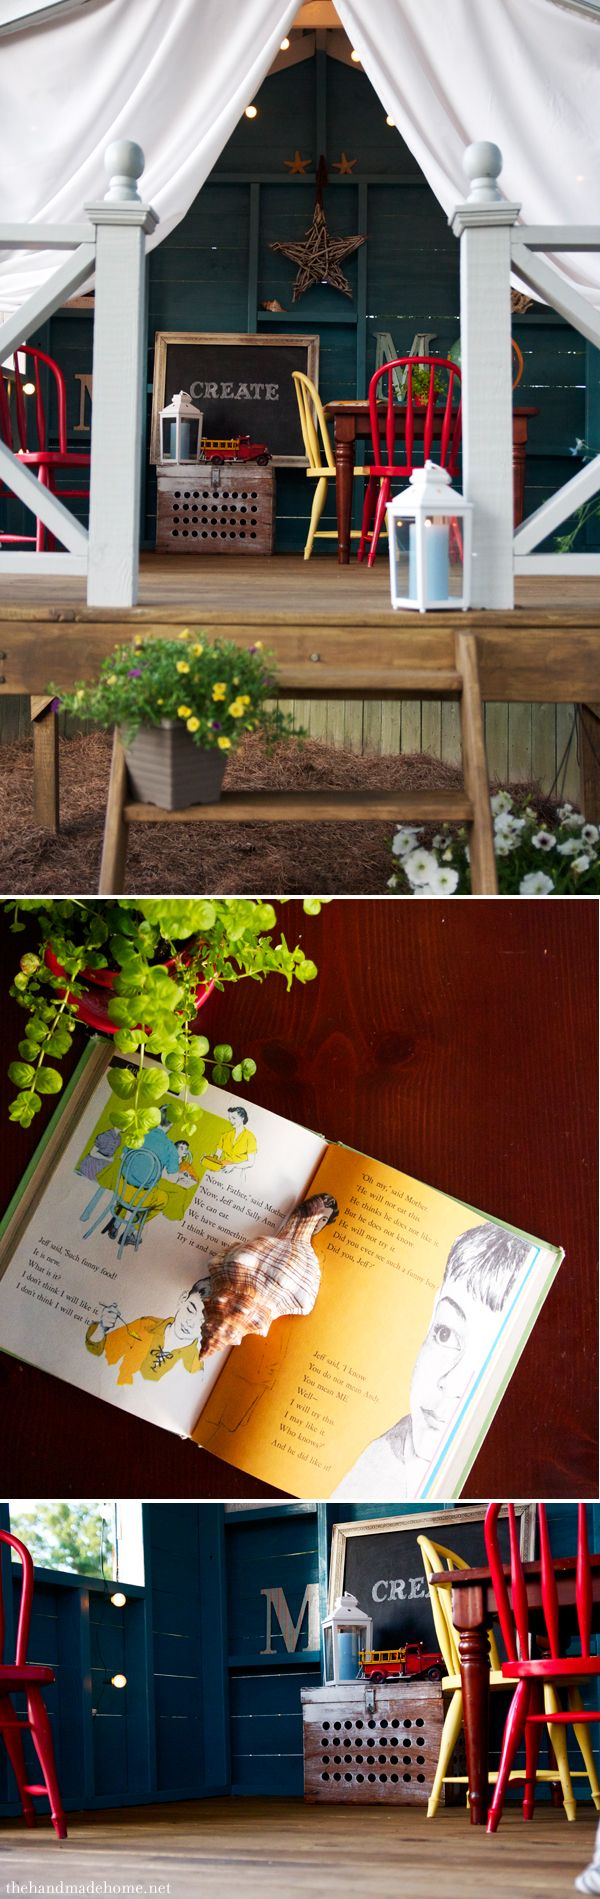 A Handmade Hideaway - The Handmade Home..... a tree-less tree house, fort or secret hideout. A simple, easy DIY hideaway for the backyard!